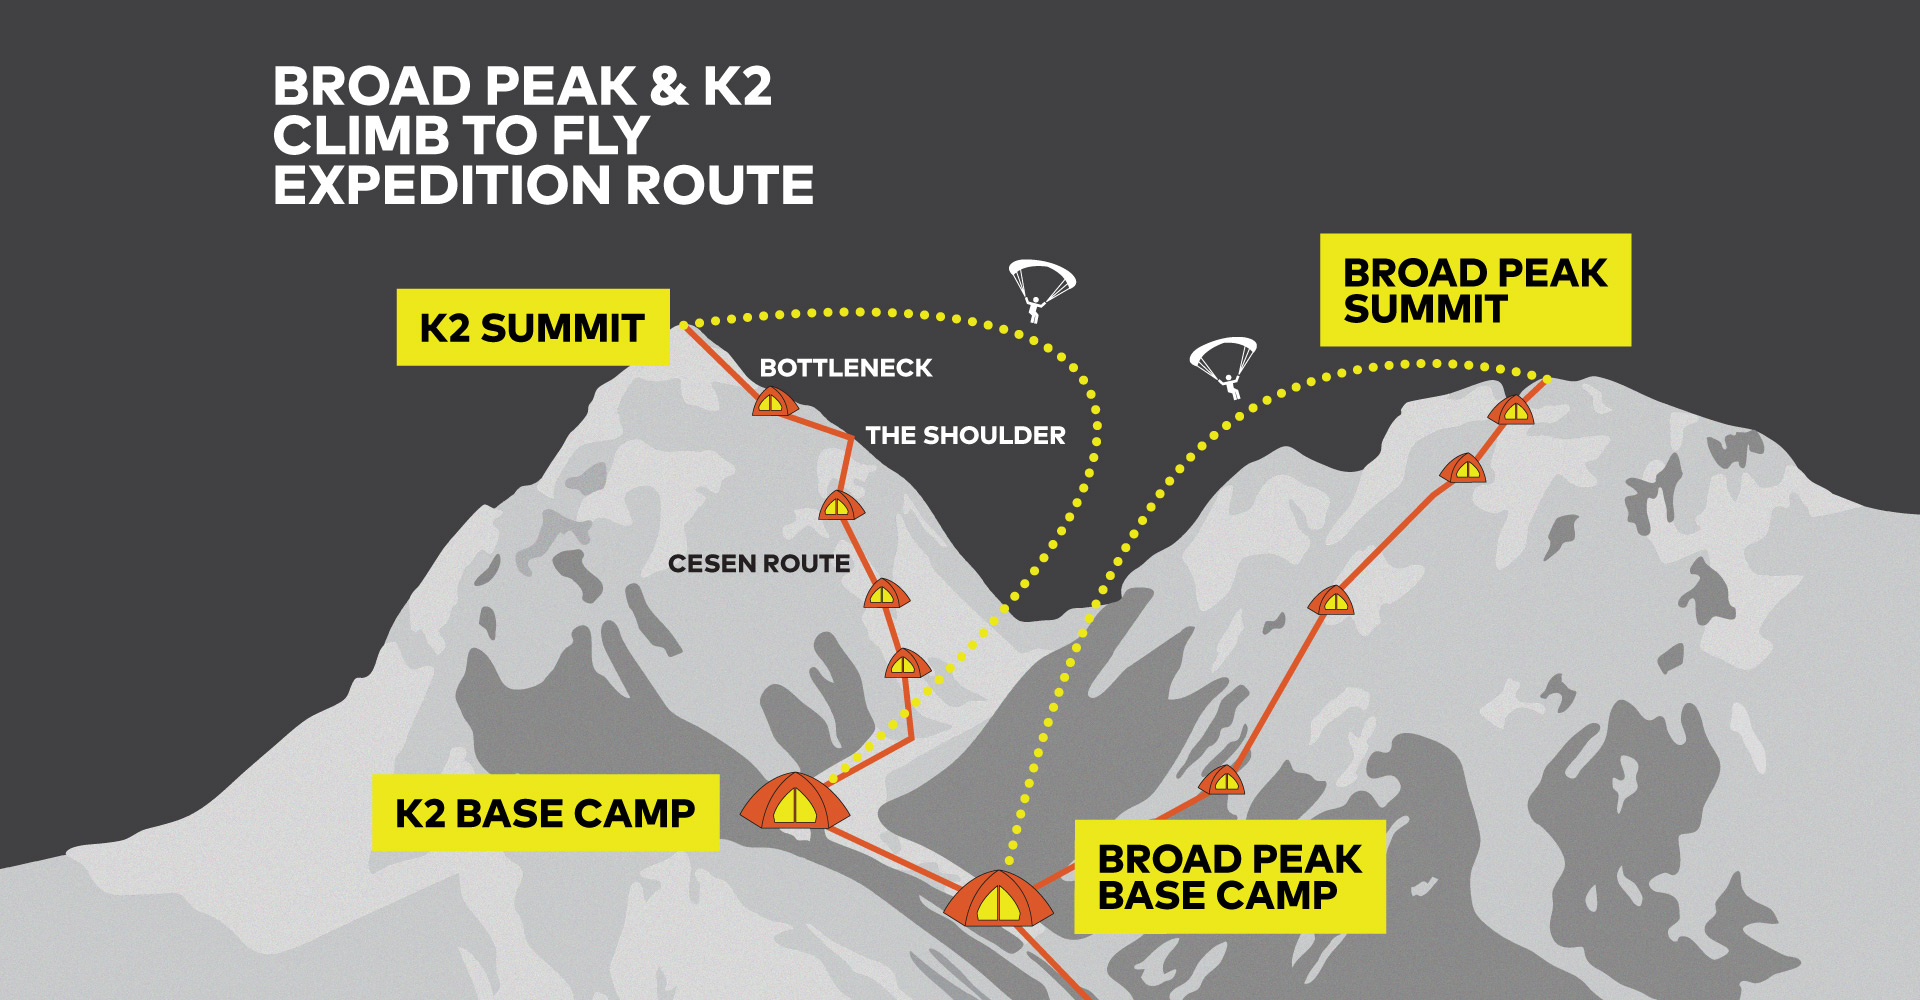 Broad Peak & K2 Expedition Route